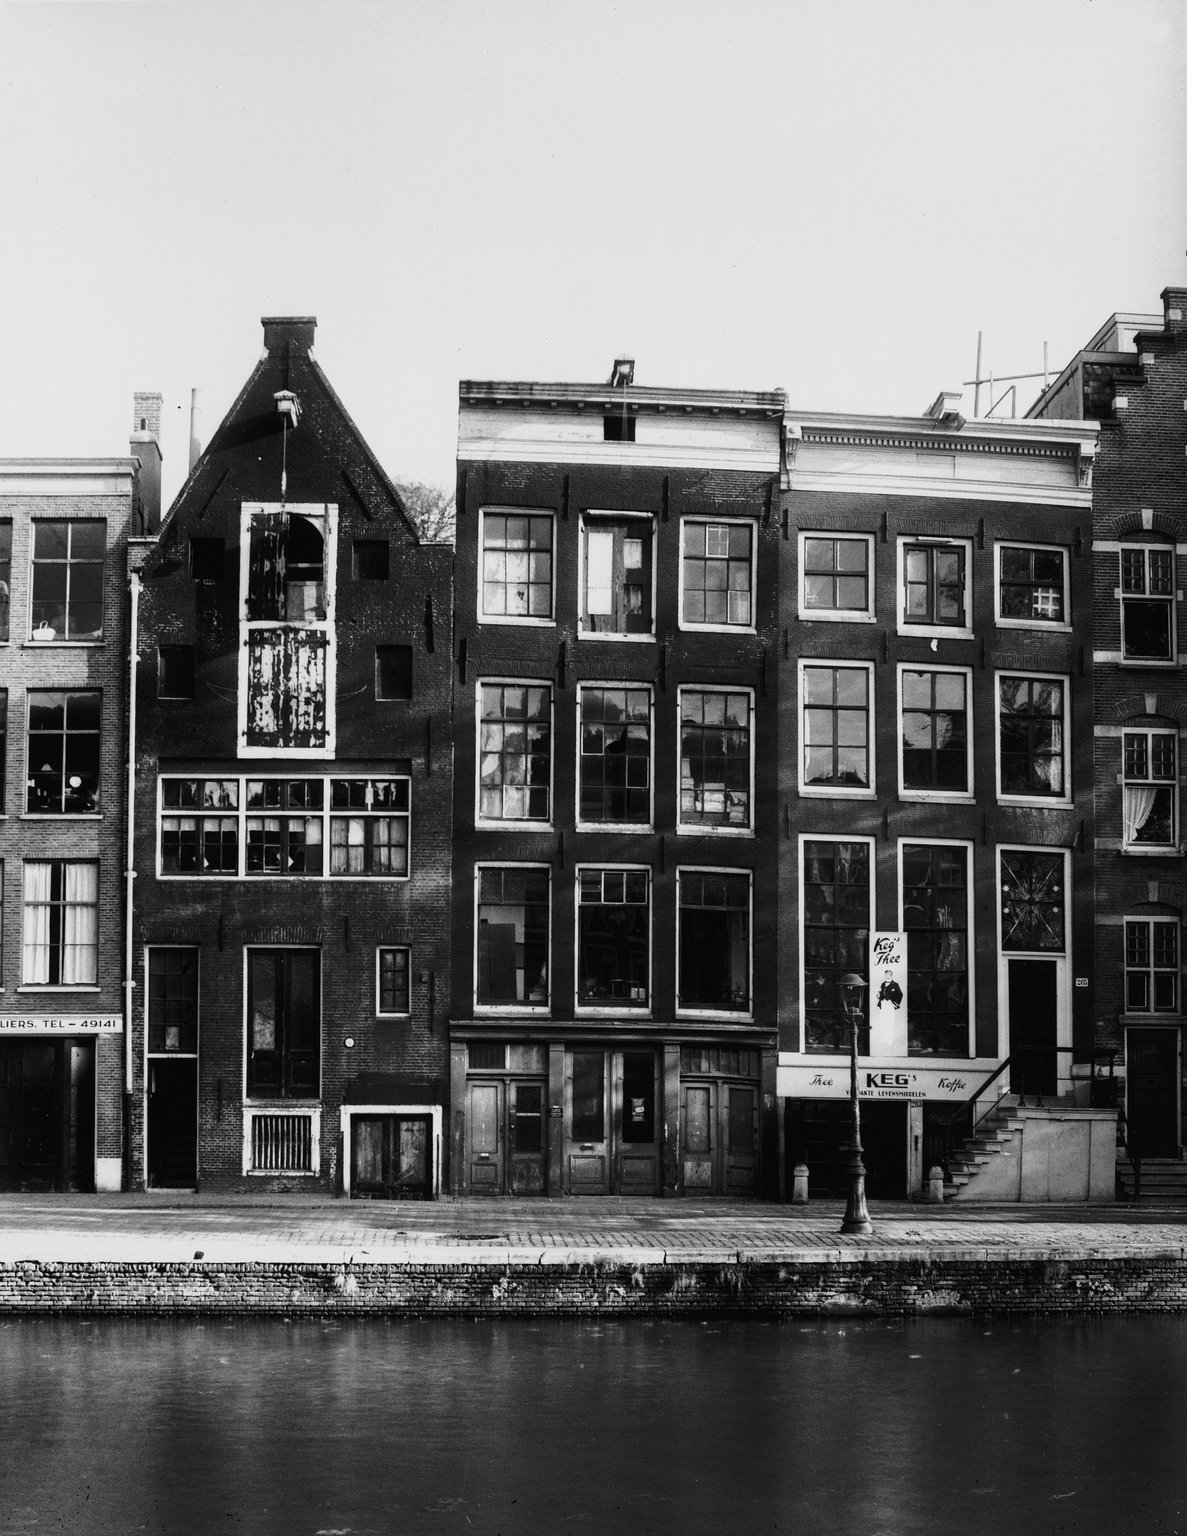 Otto Frank's business premises, Prinsengracht 263 (centre), around 1947.